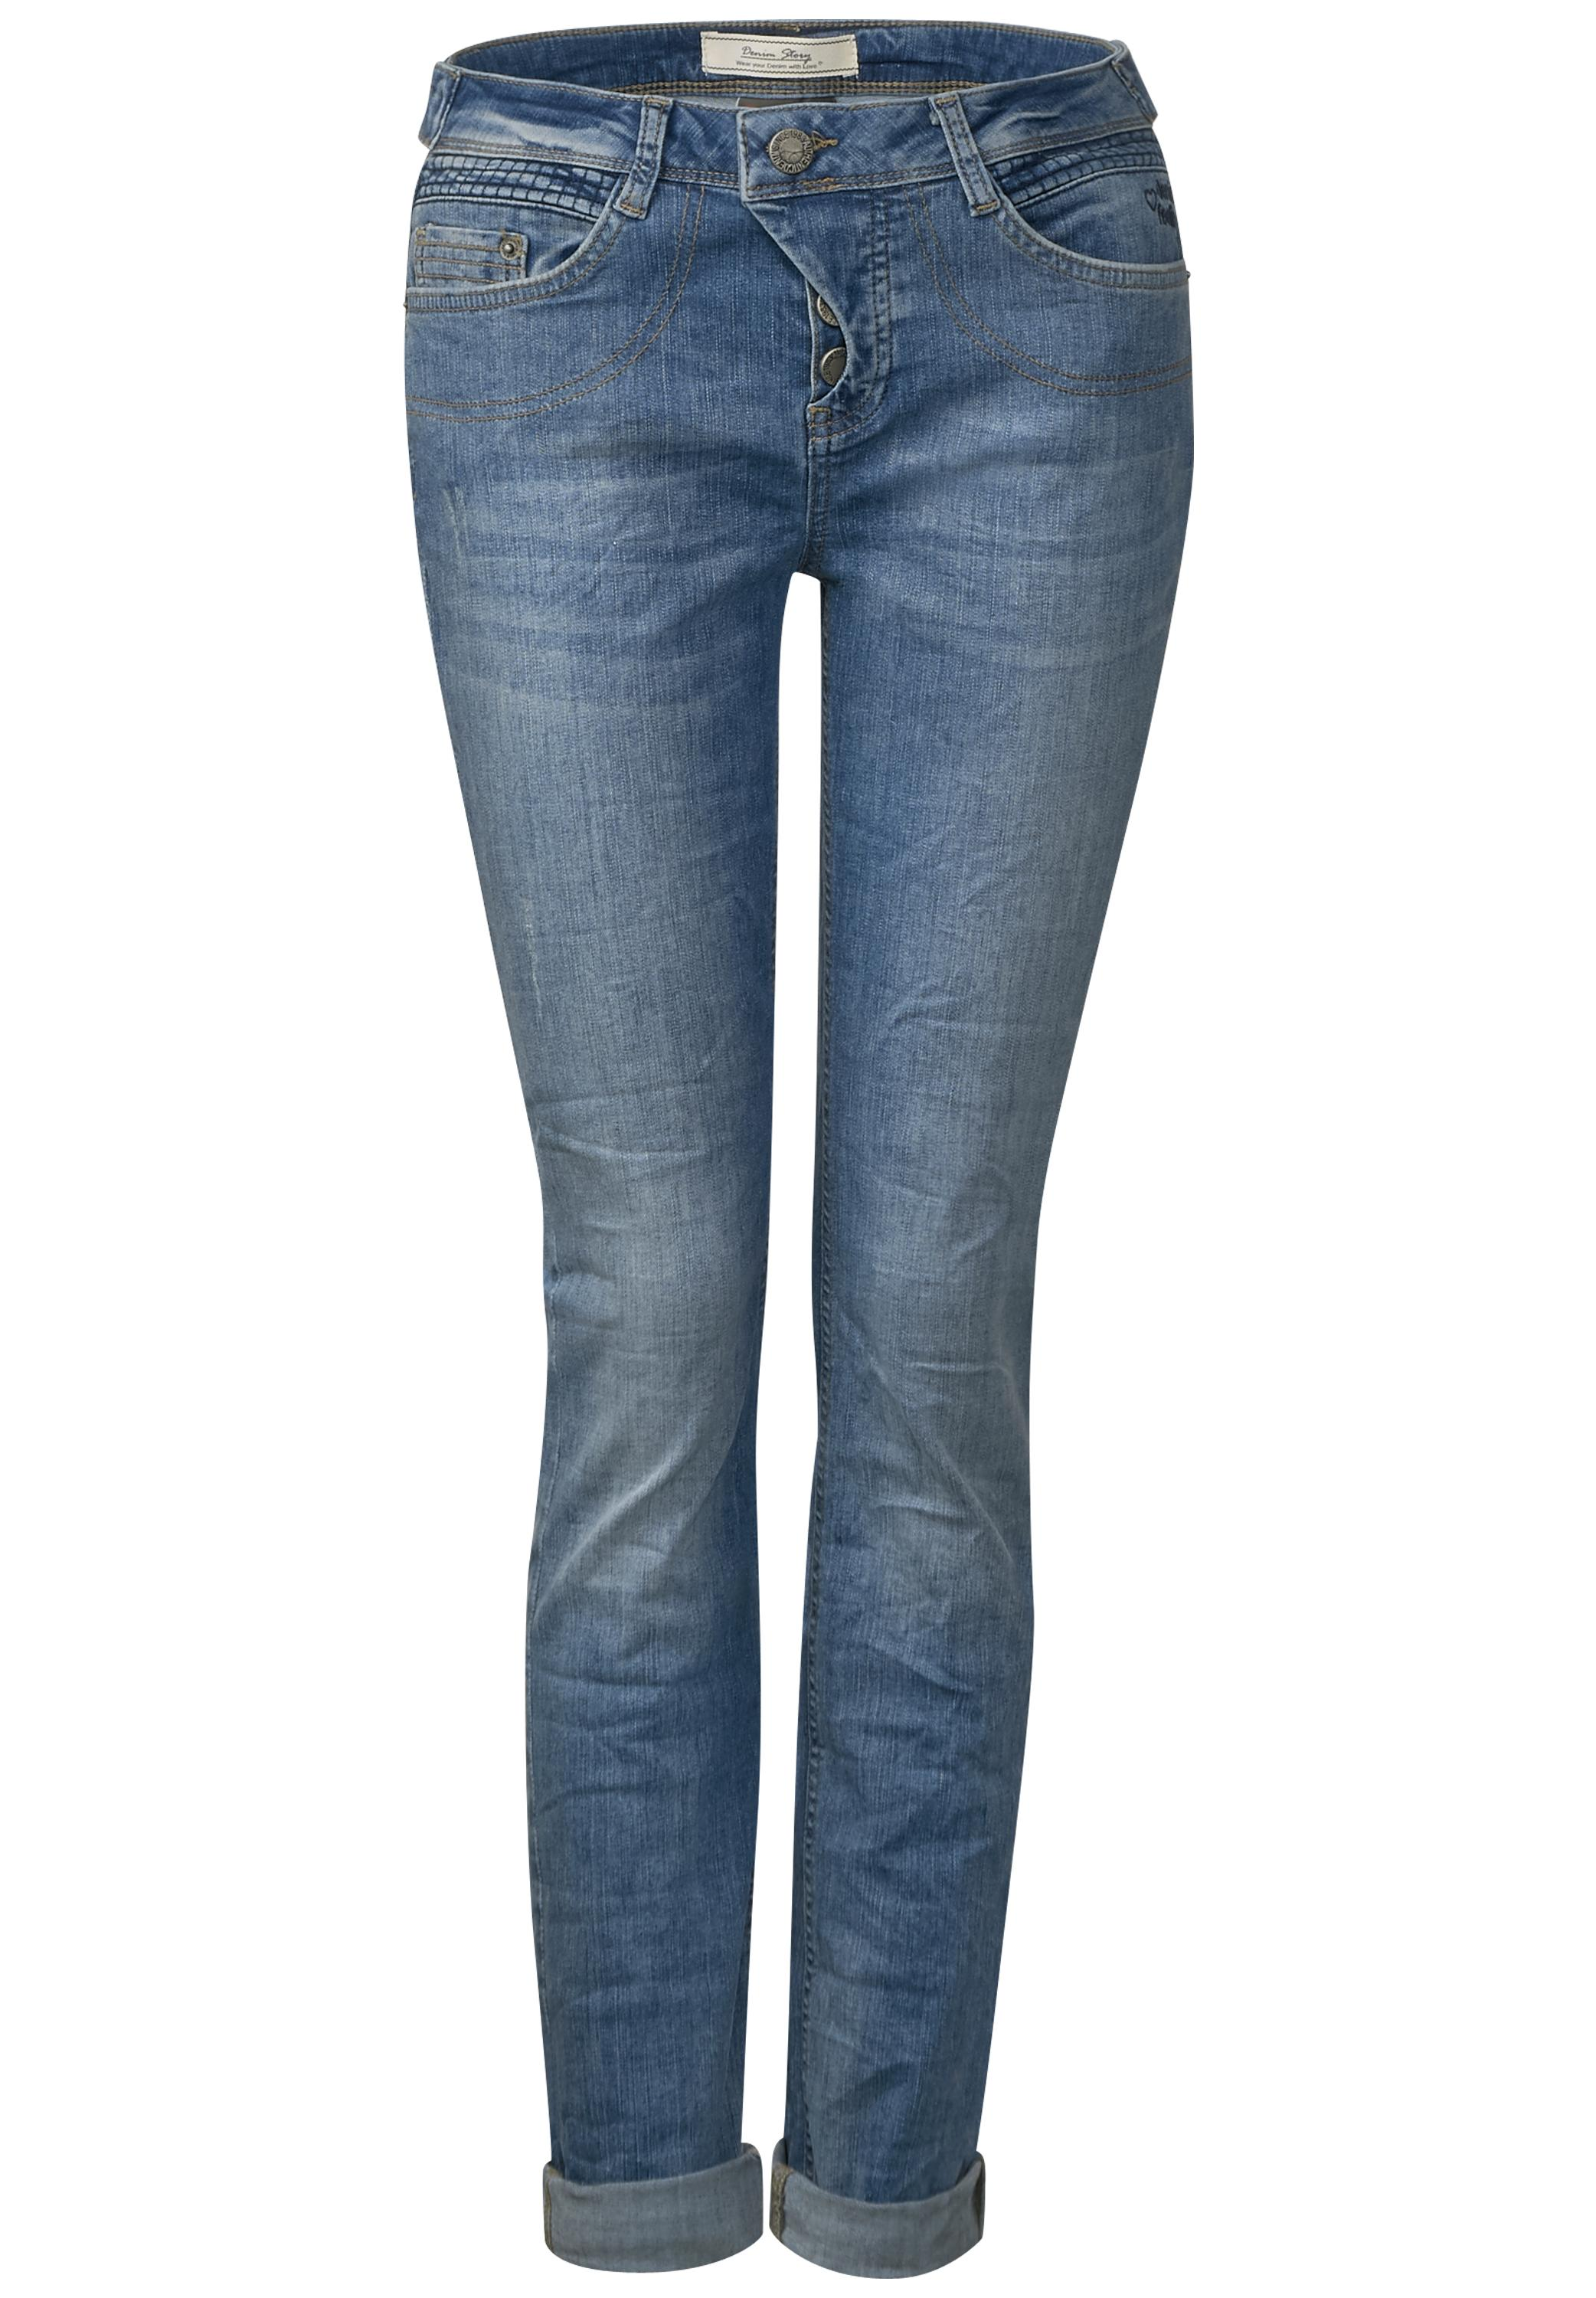 Street One Loose Fit Jeans Mika in Authentic Indigo Wash